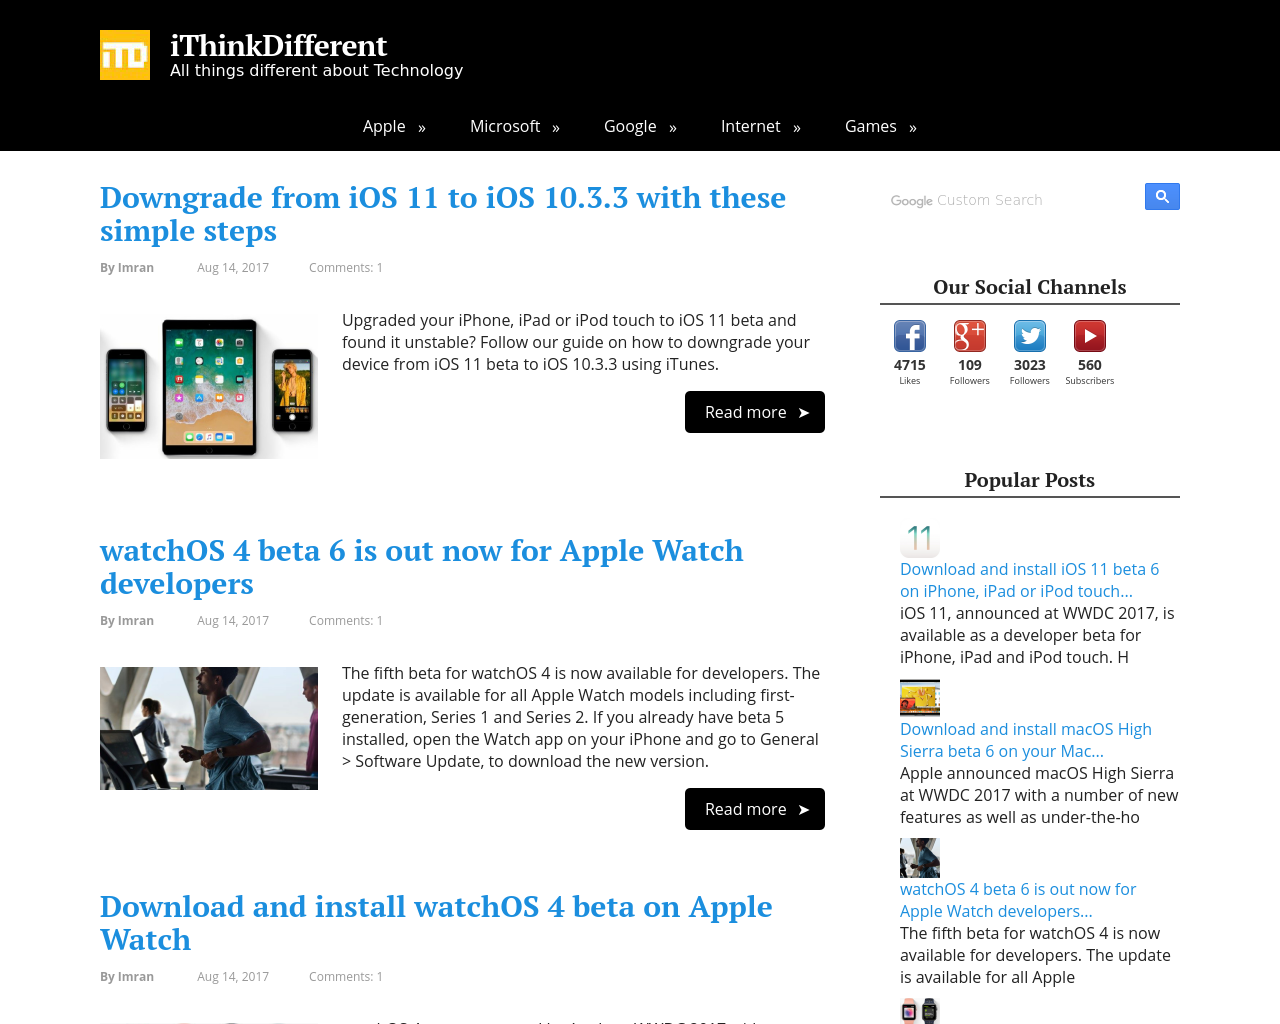 IThinkDifferent-Advertising-Reviews-Pricing